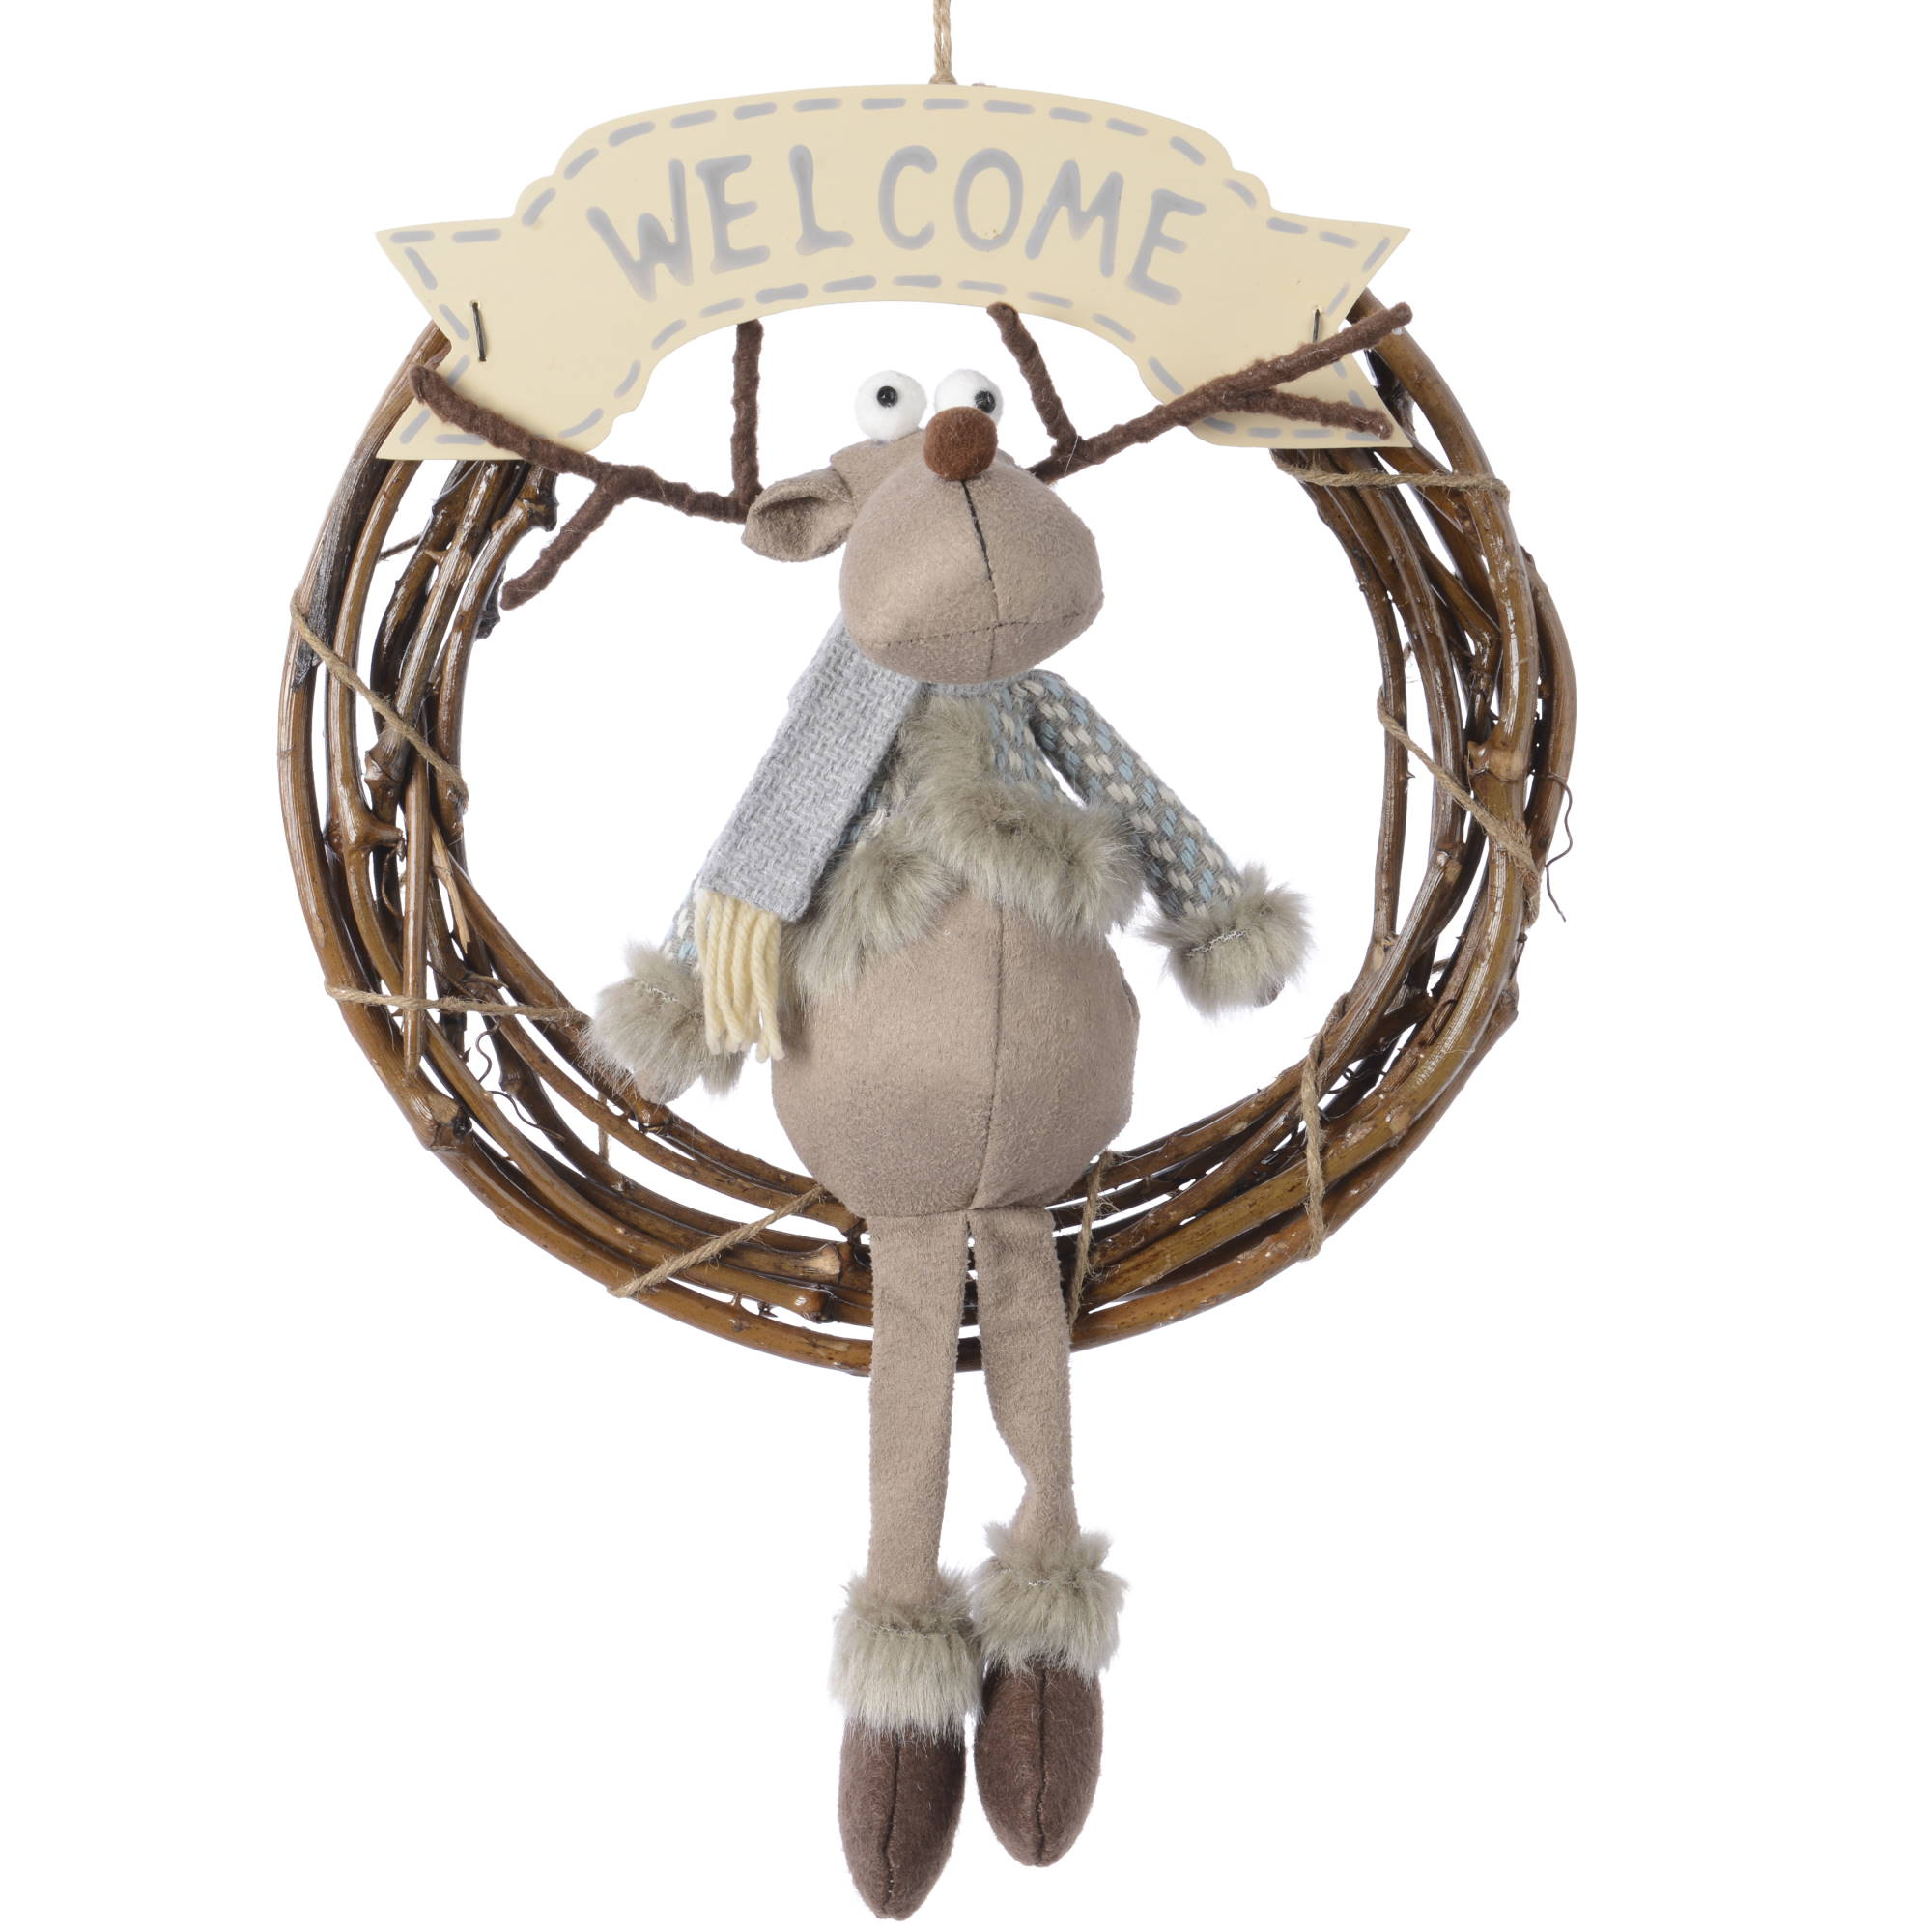 Hanging Reindeer Welcome Sign